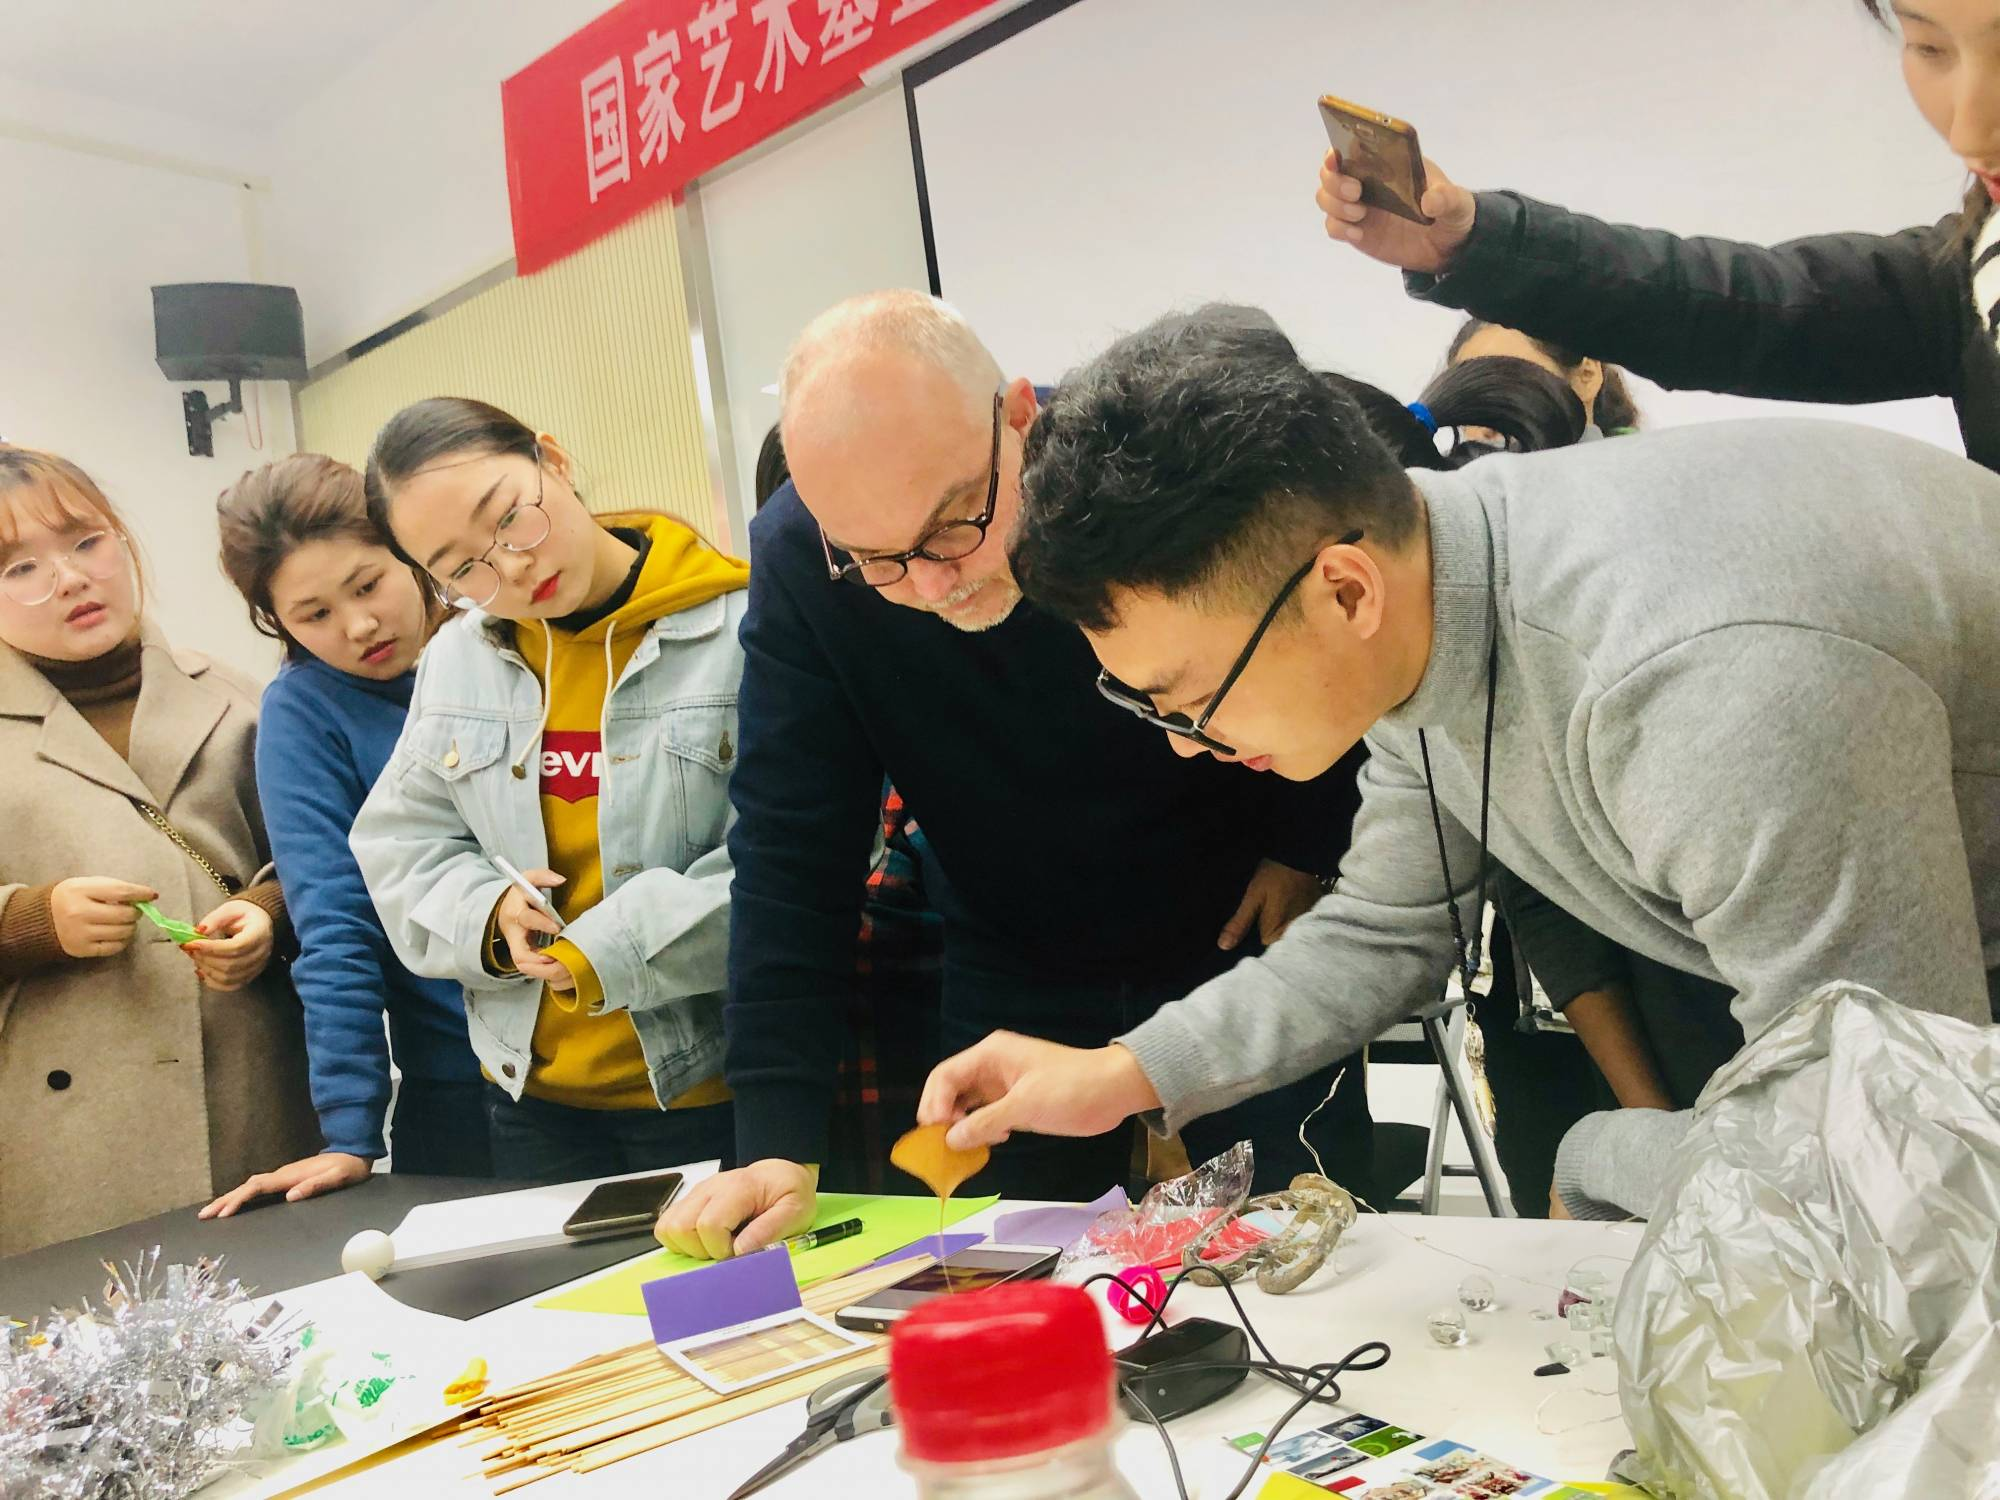 Workshop Hubei University of Technology